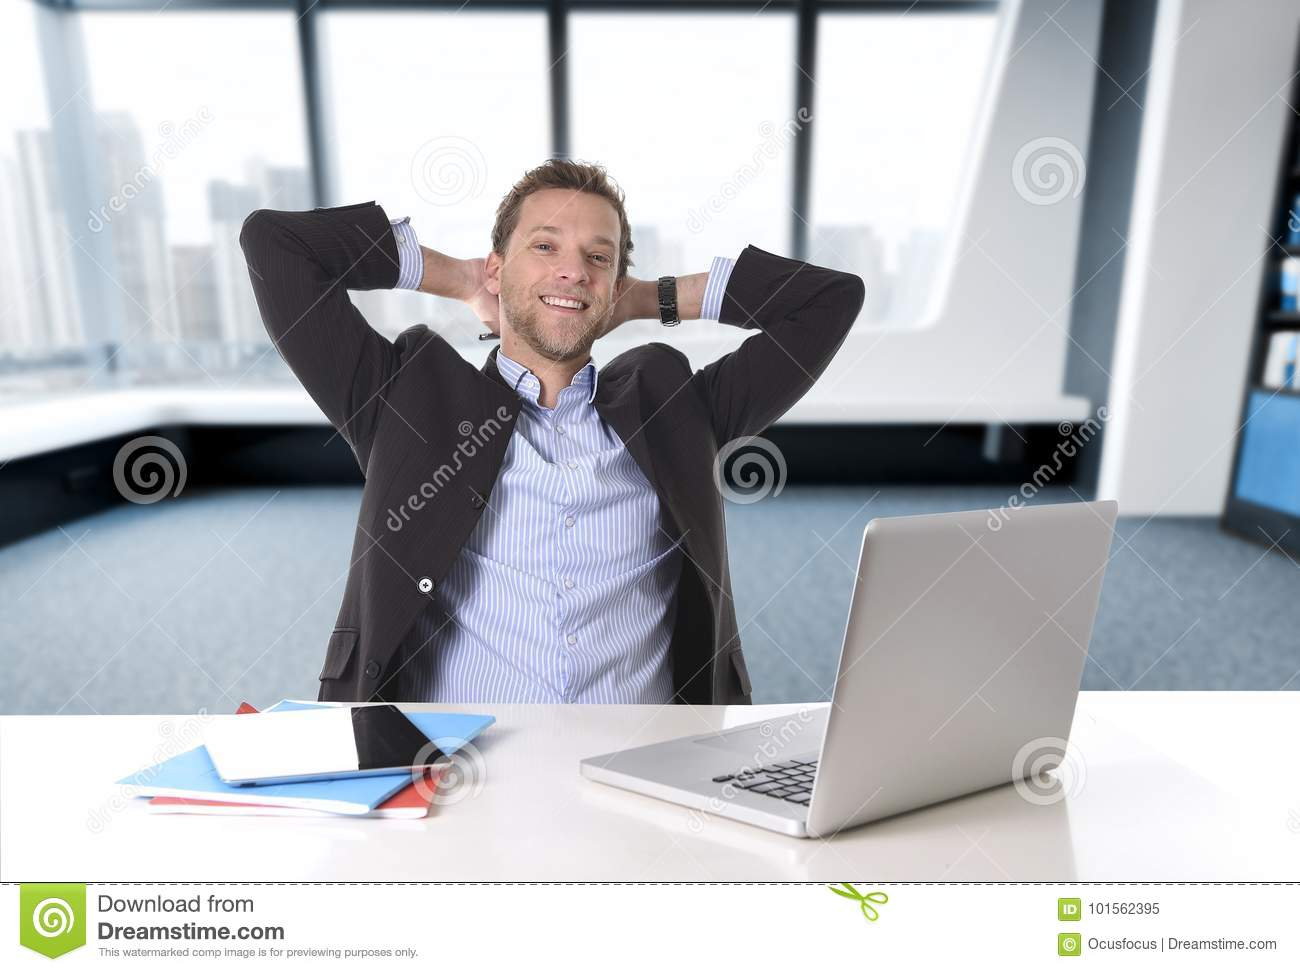 Attractive businessman happy at office work sitting at computer desk satisfied and smiling relaxed